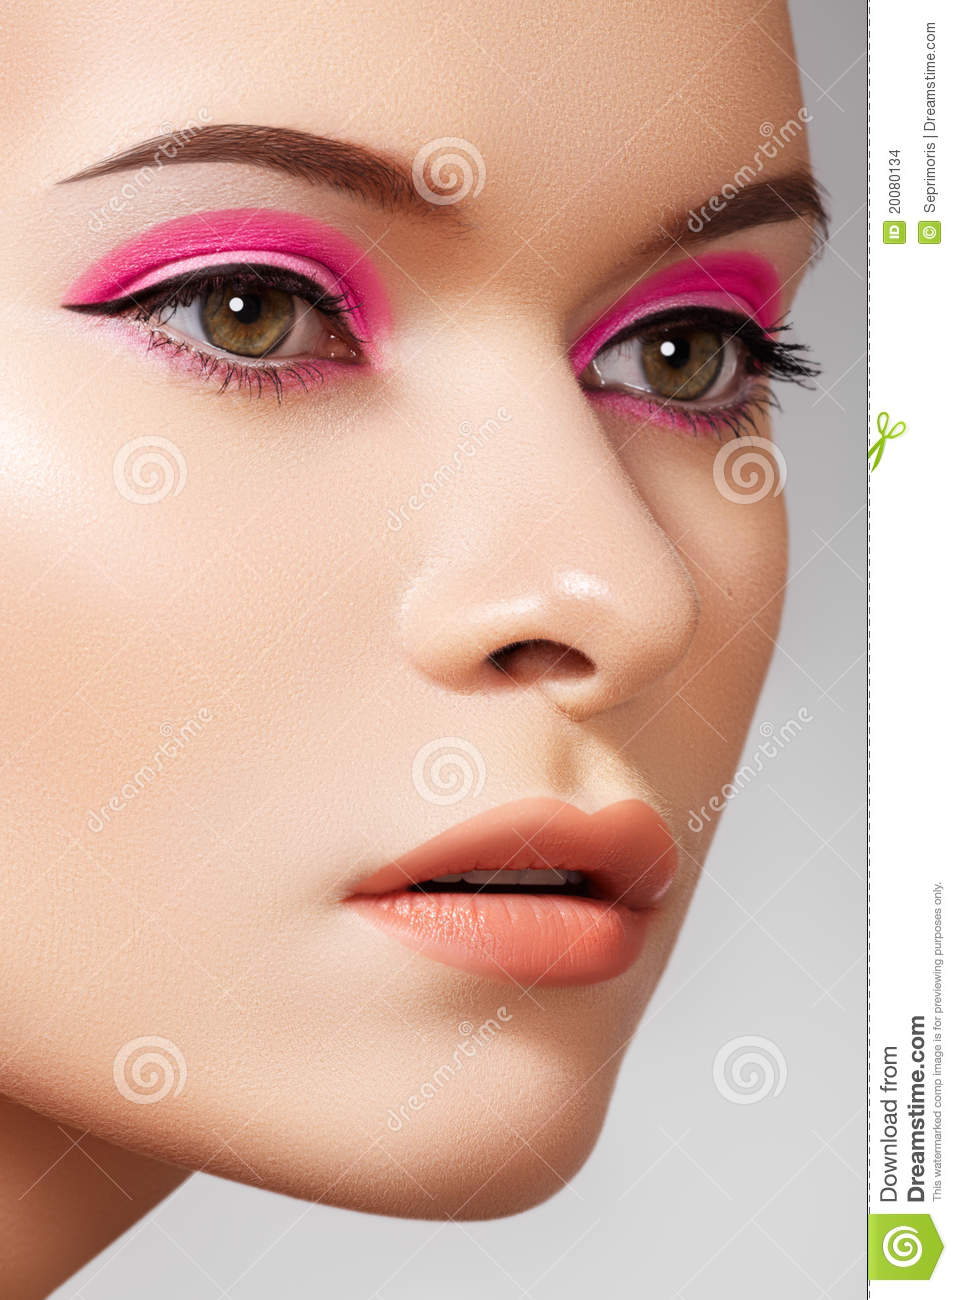 Cosmetics And Makeup: Luxury Fashion Cosmetics And Bright Beauty Make-up Stock